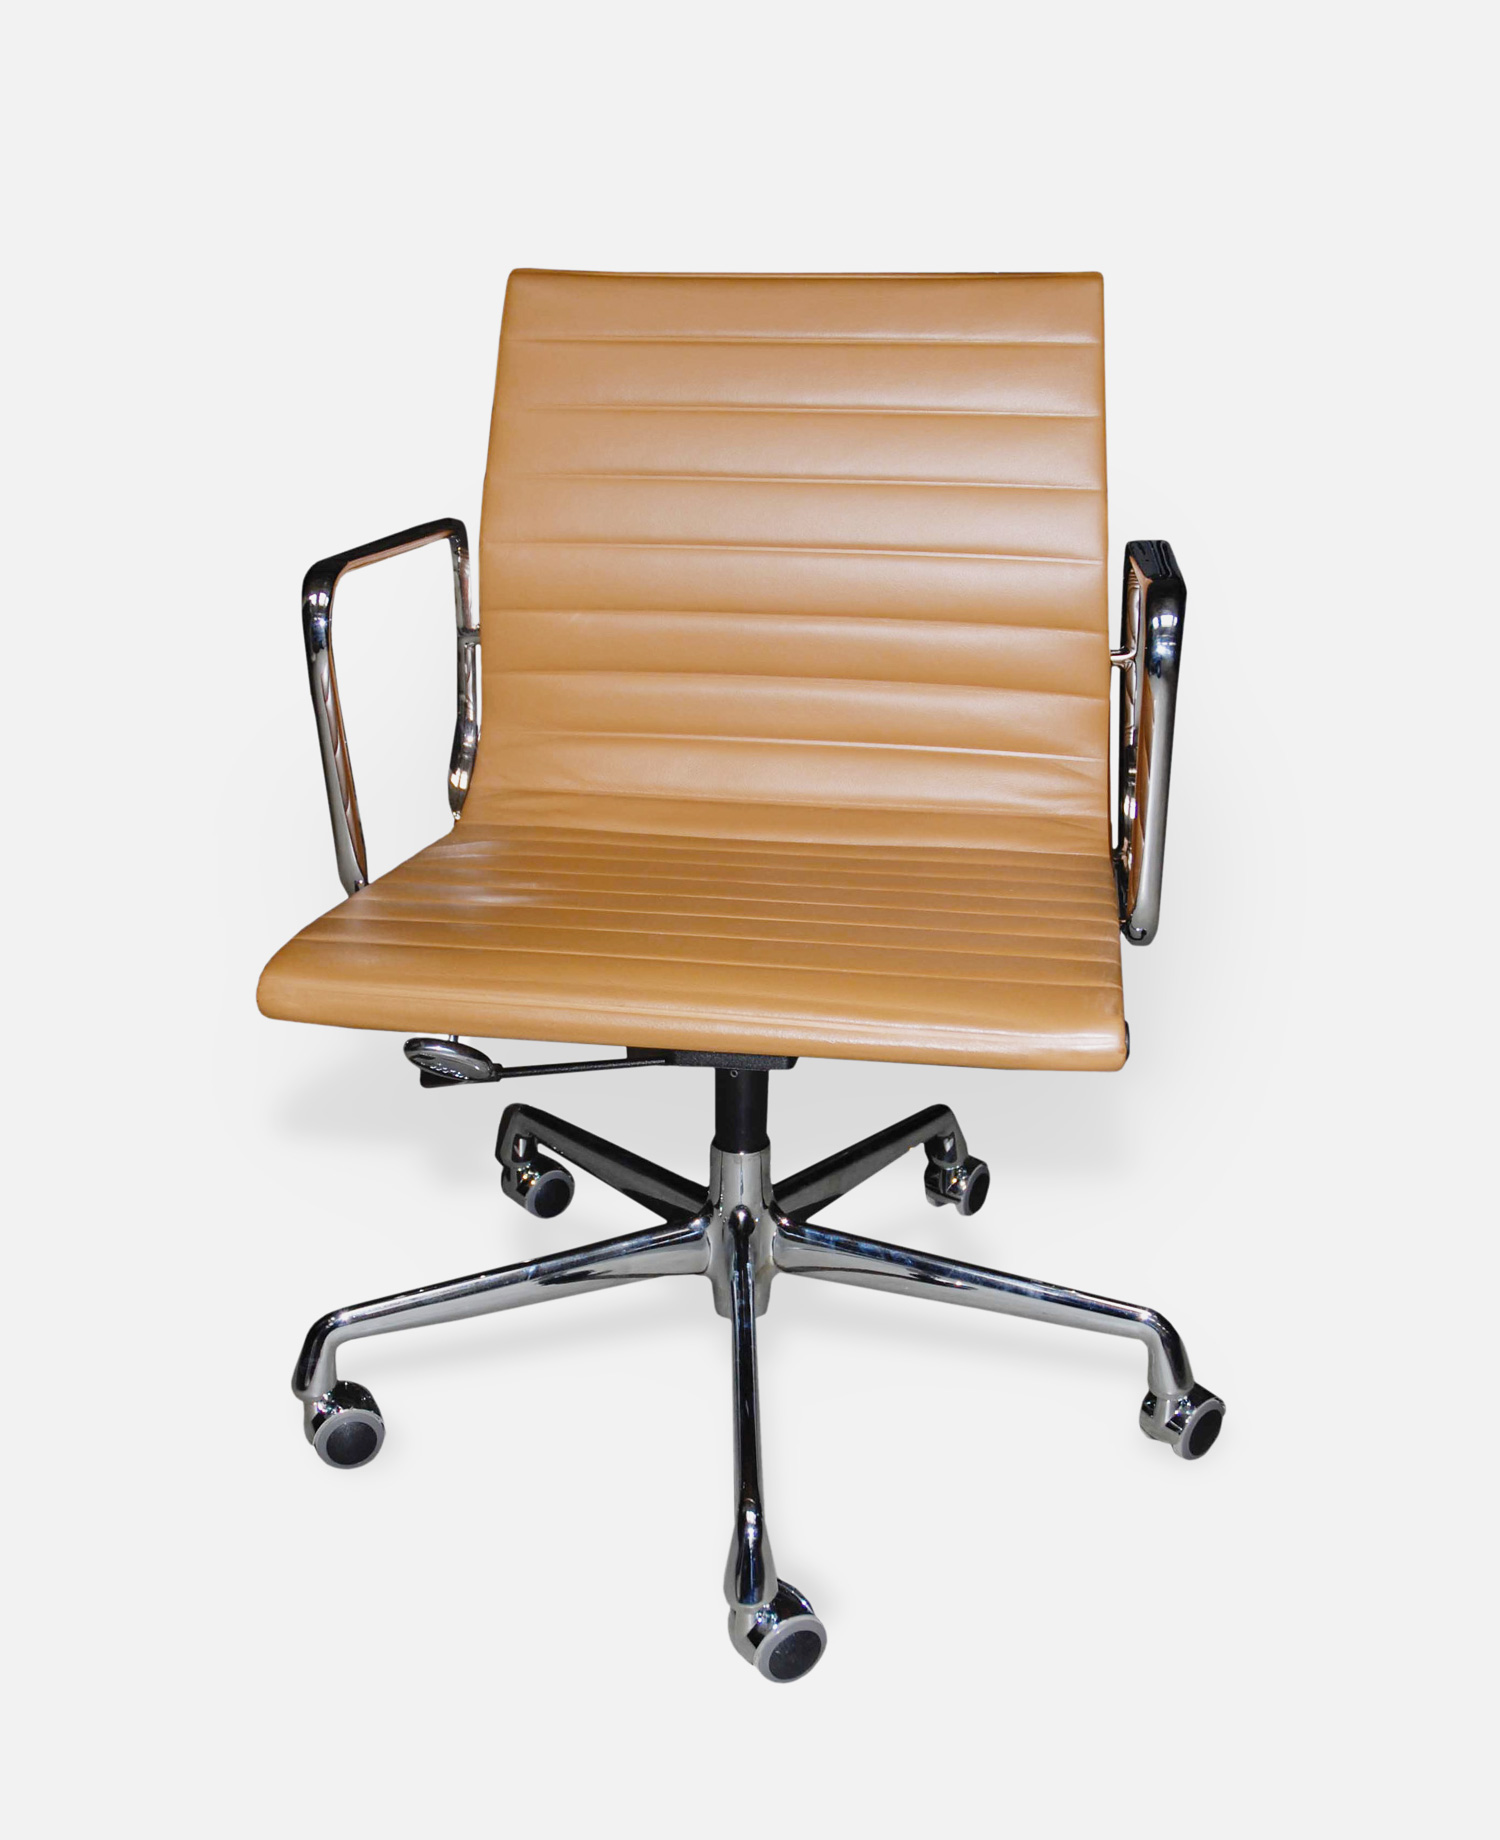 Office chair ea 117 aluminium group charles ray eames for Eames ea 117 replica